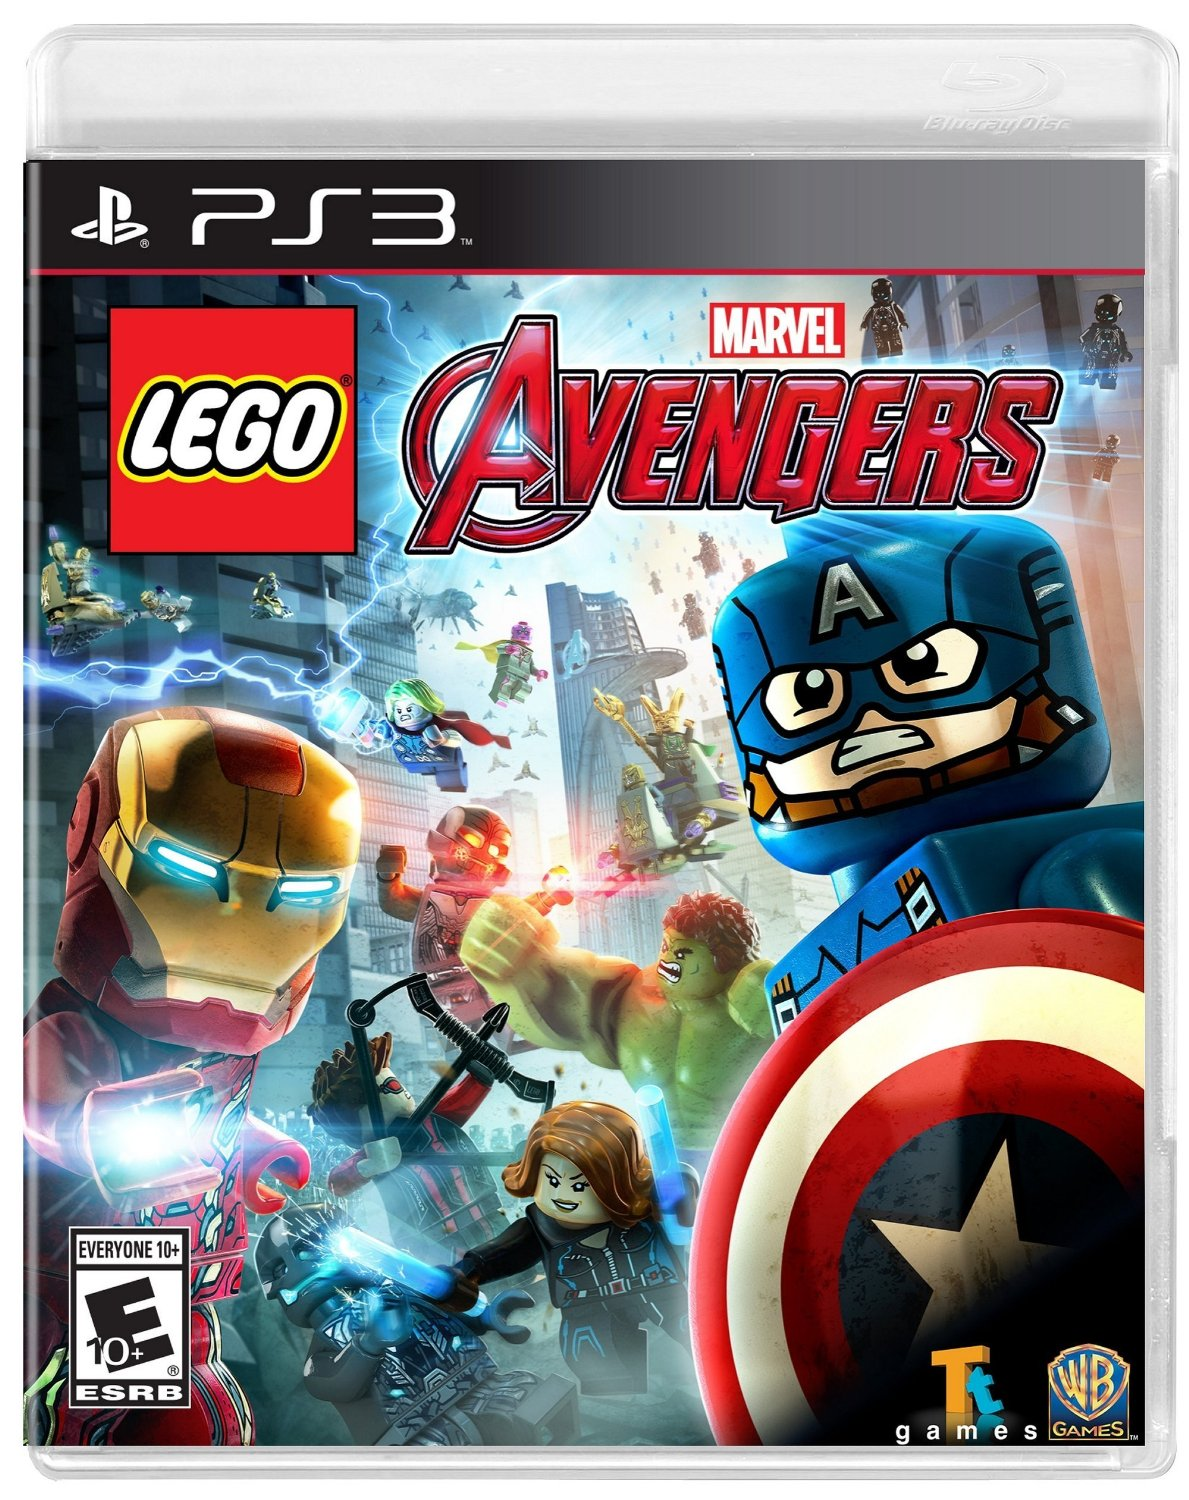 [GAMES] Lego Marvel's Avengers (PS3/EUR)